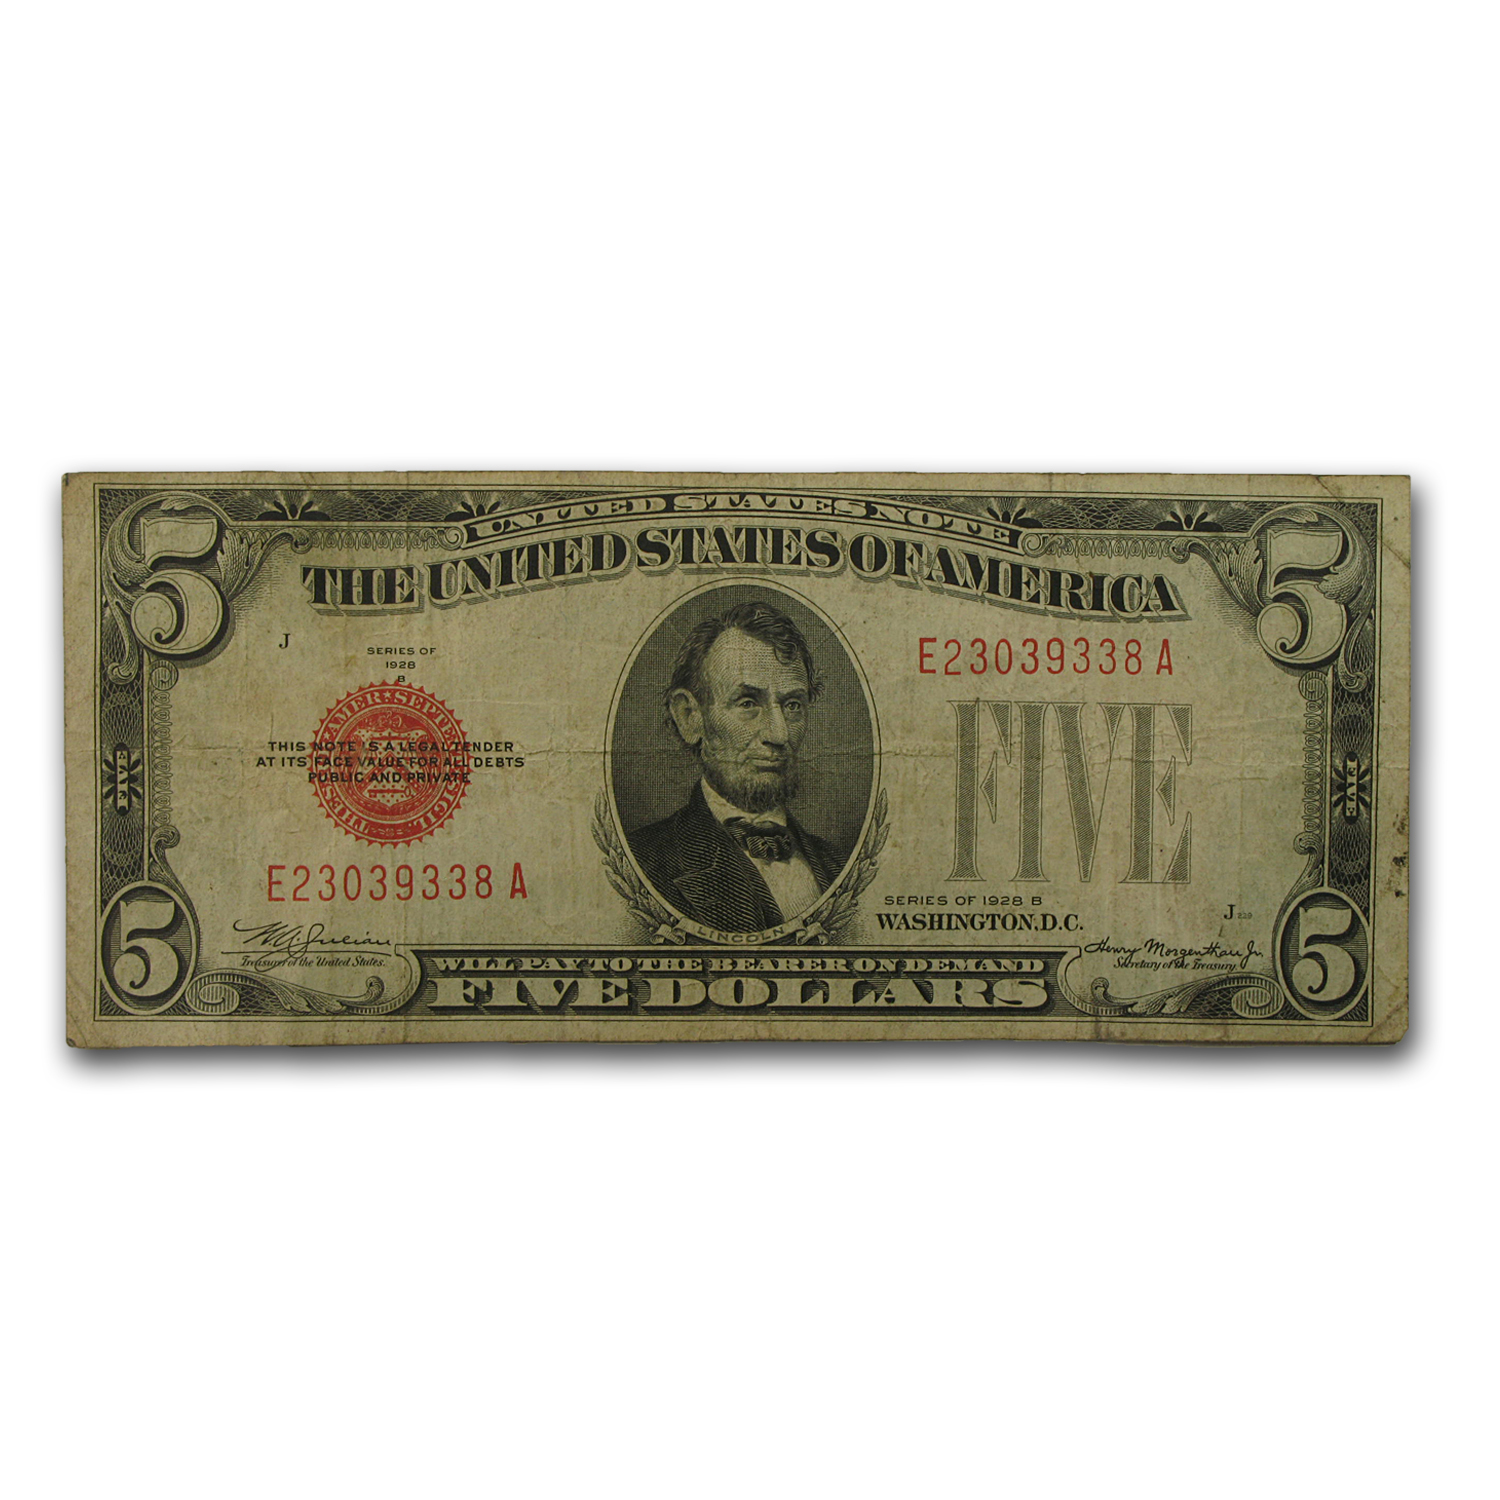 1928-B thru 1928-F $5.00 U.S. Note Red Seal VG/VF